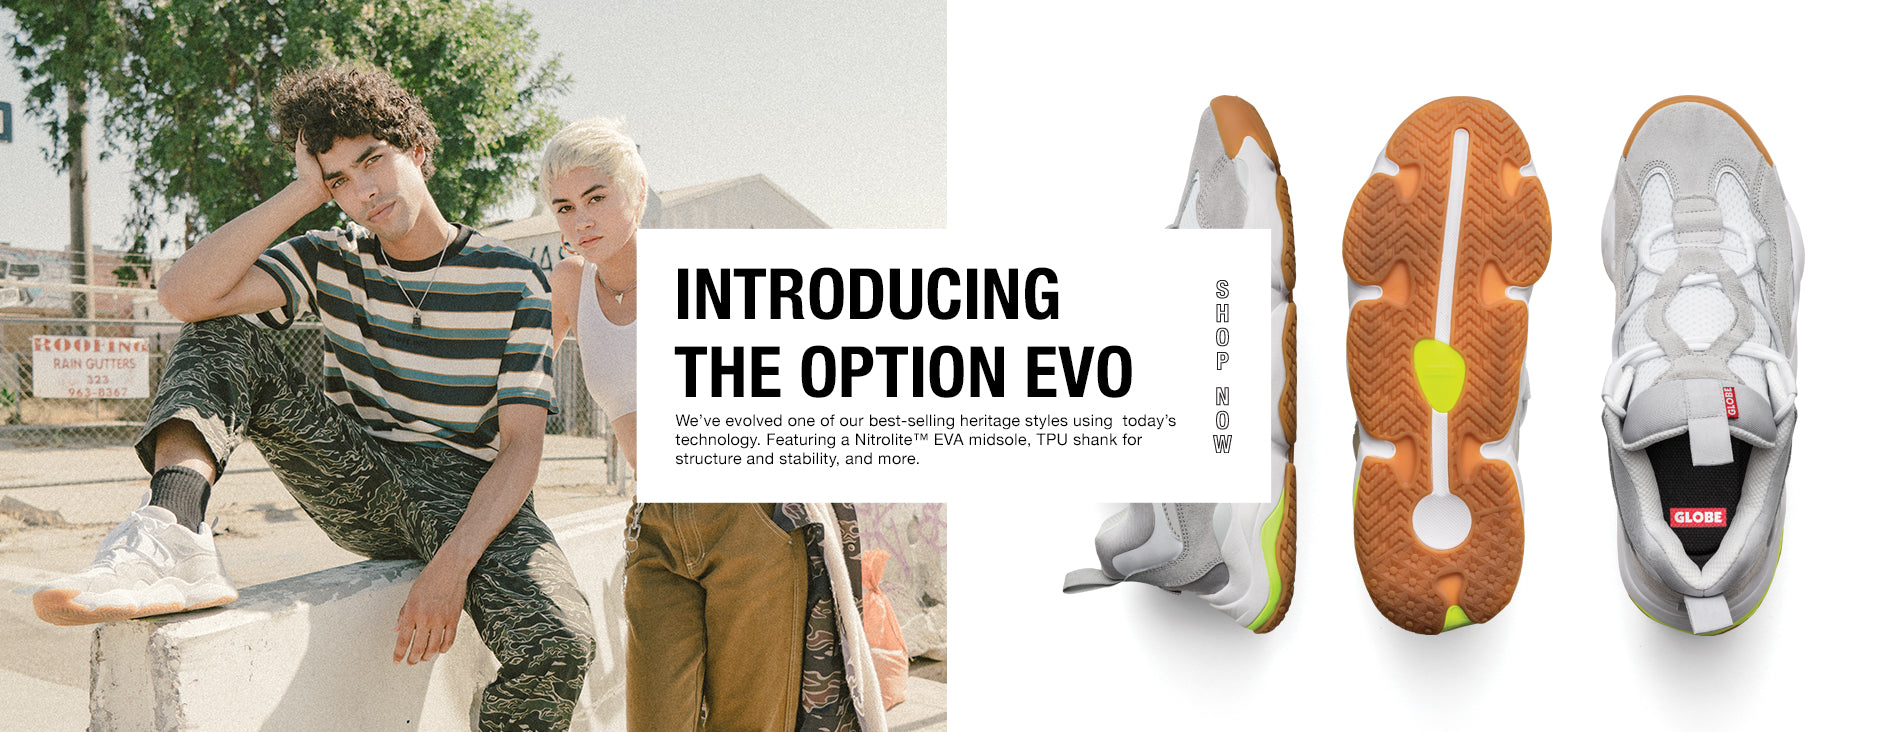 Introducing the Option Evo